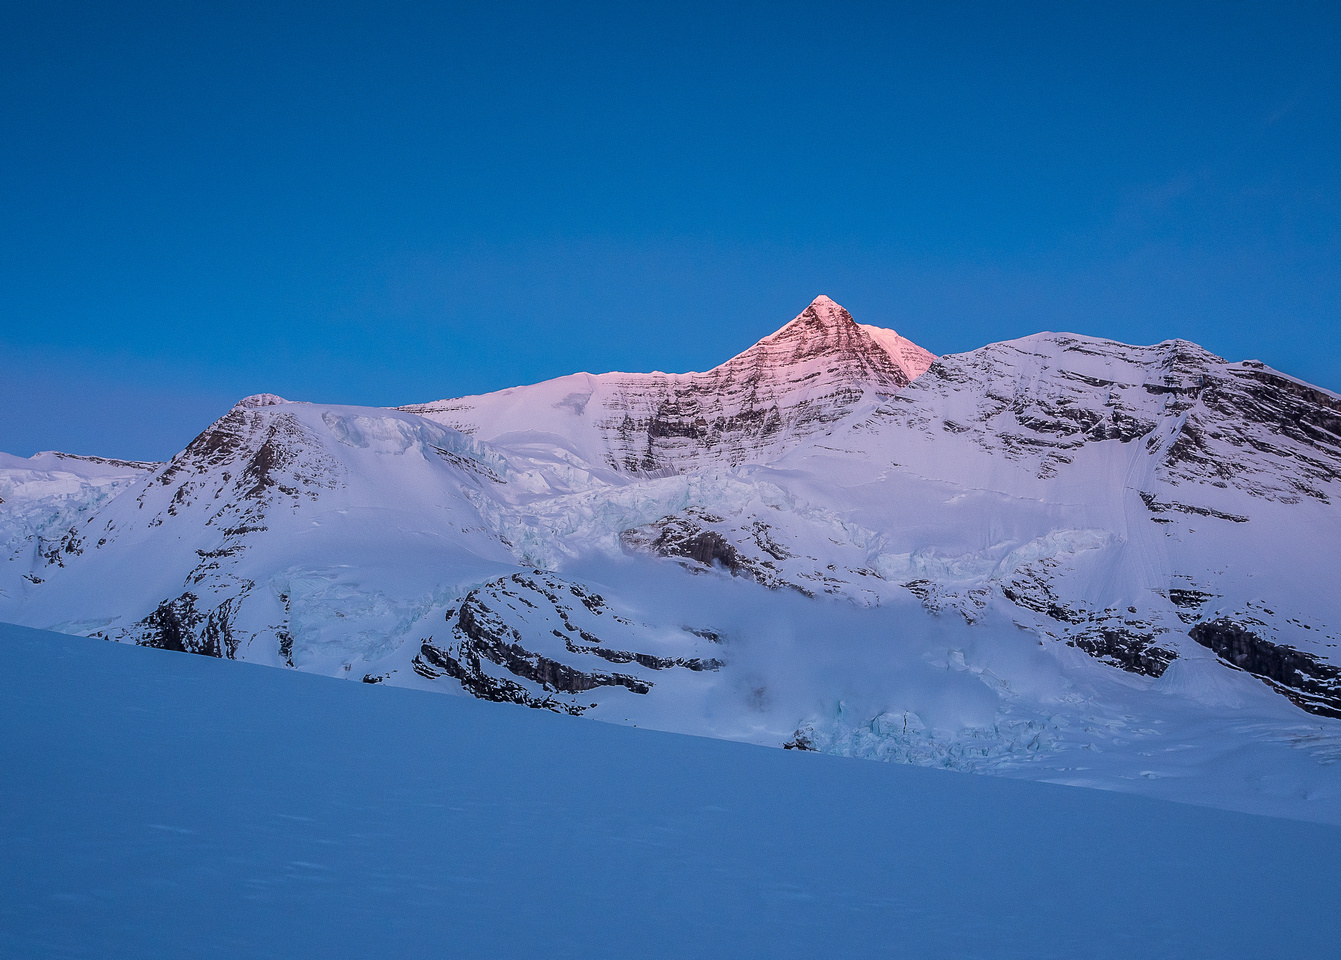 Mount Robson catches alpine glow as an ice avalanche thunders down the Robson Cirque in the foreground!